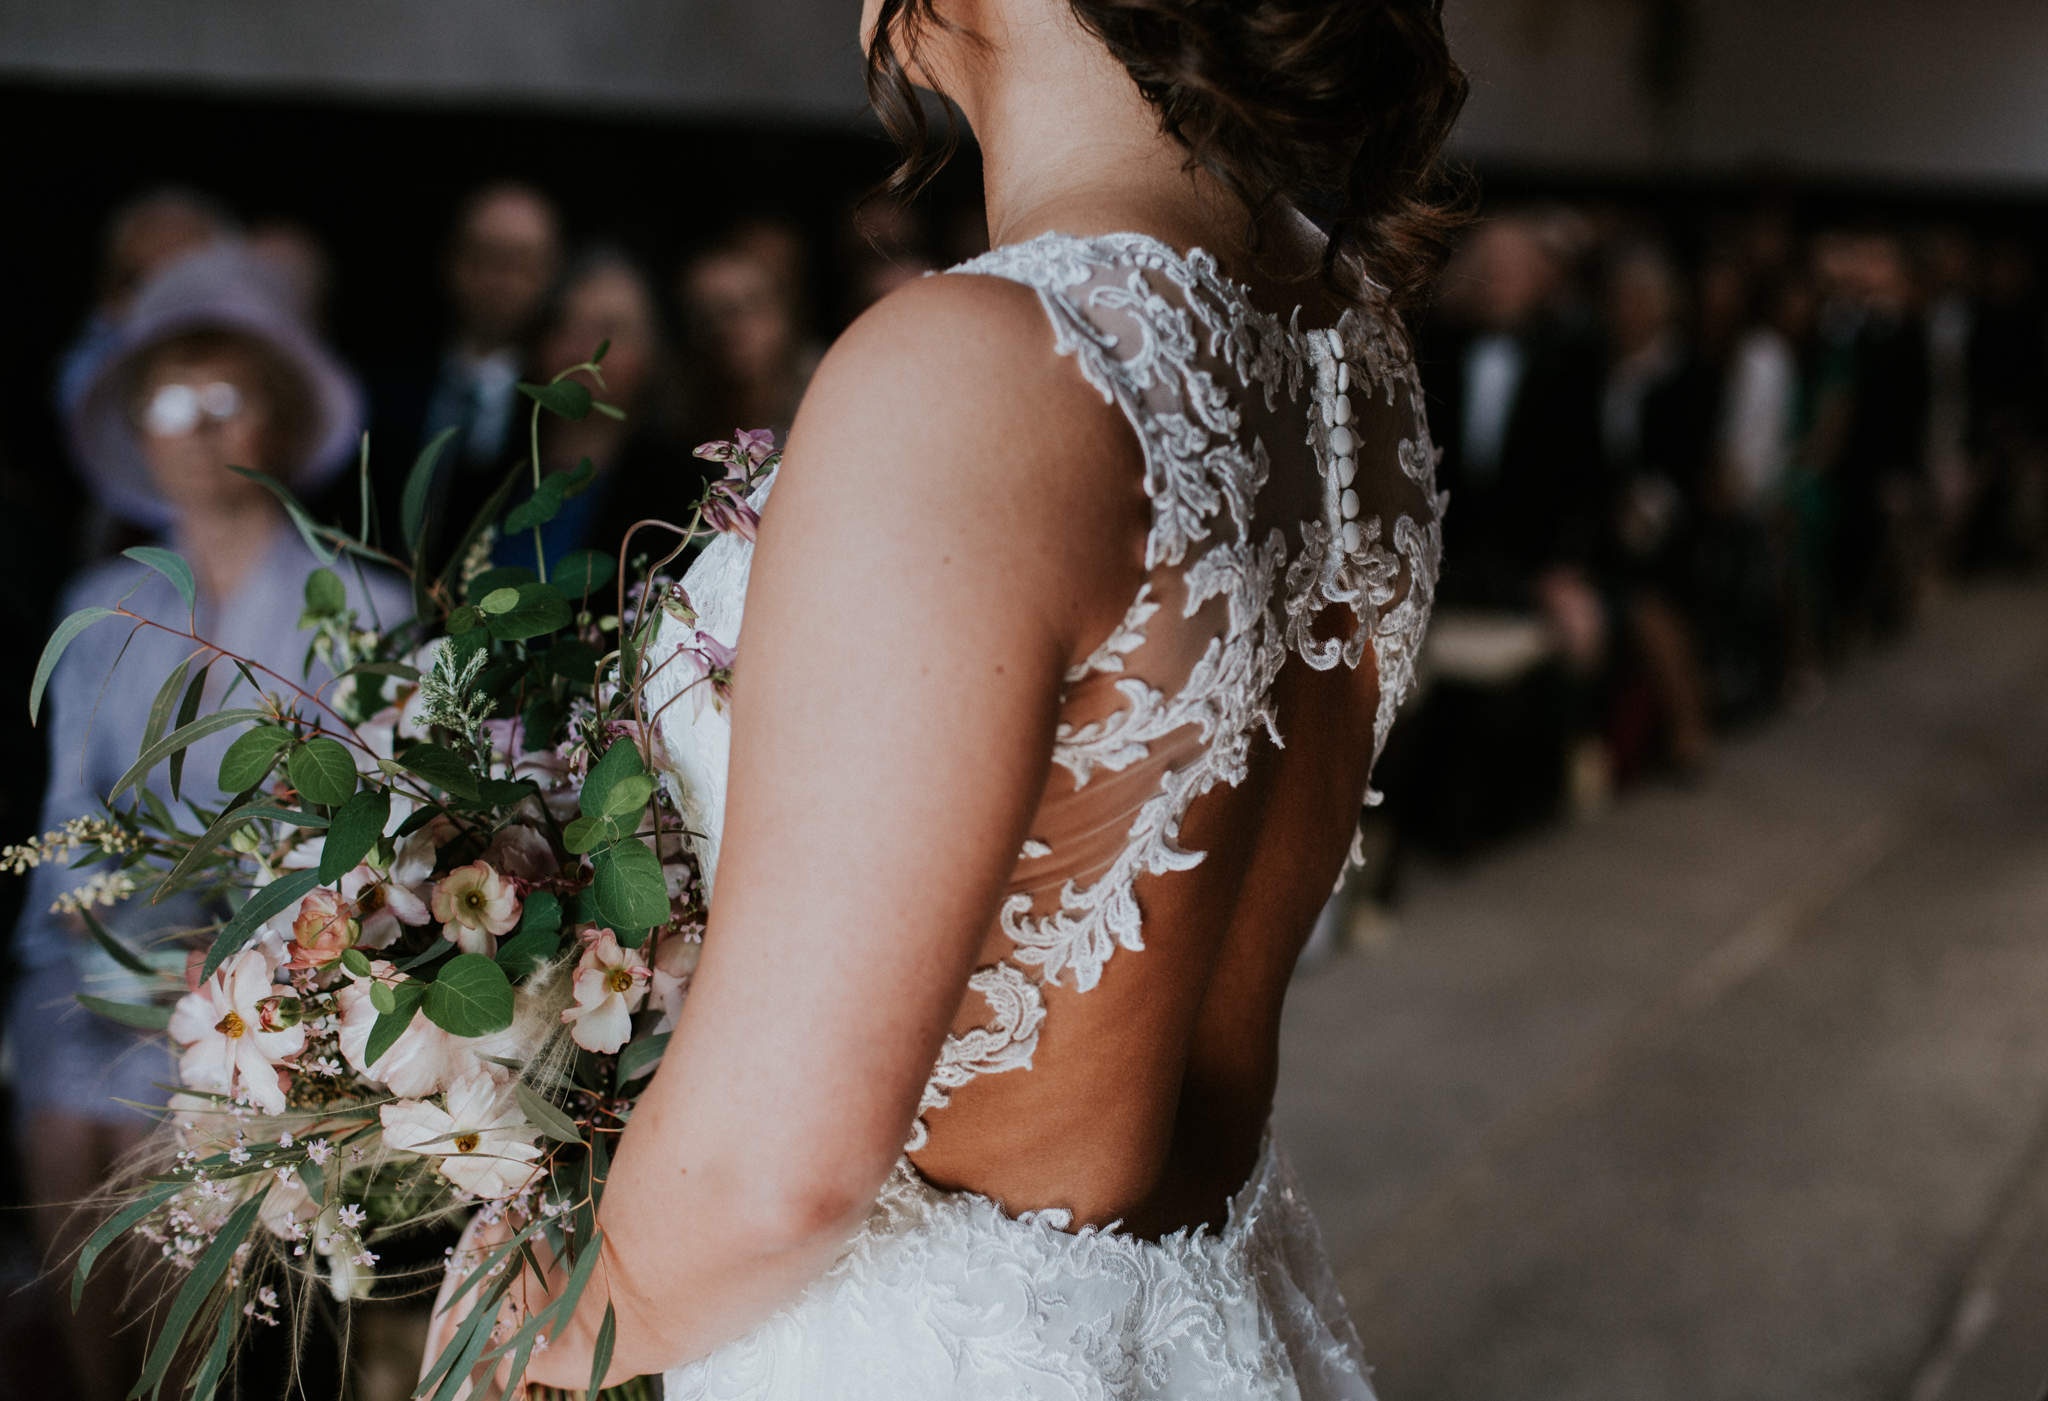 The close up shot of the bride's wedding dress at the ceremony in Scotland